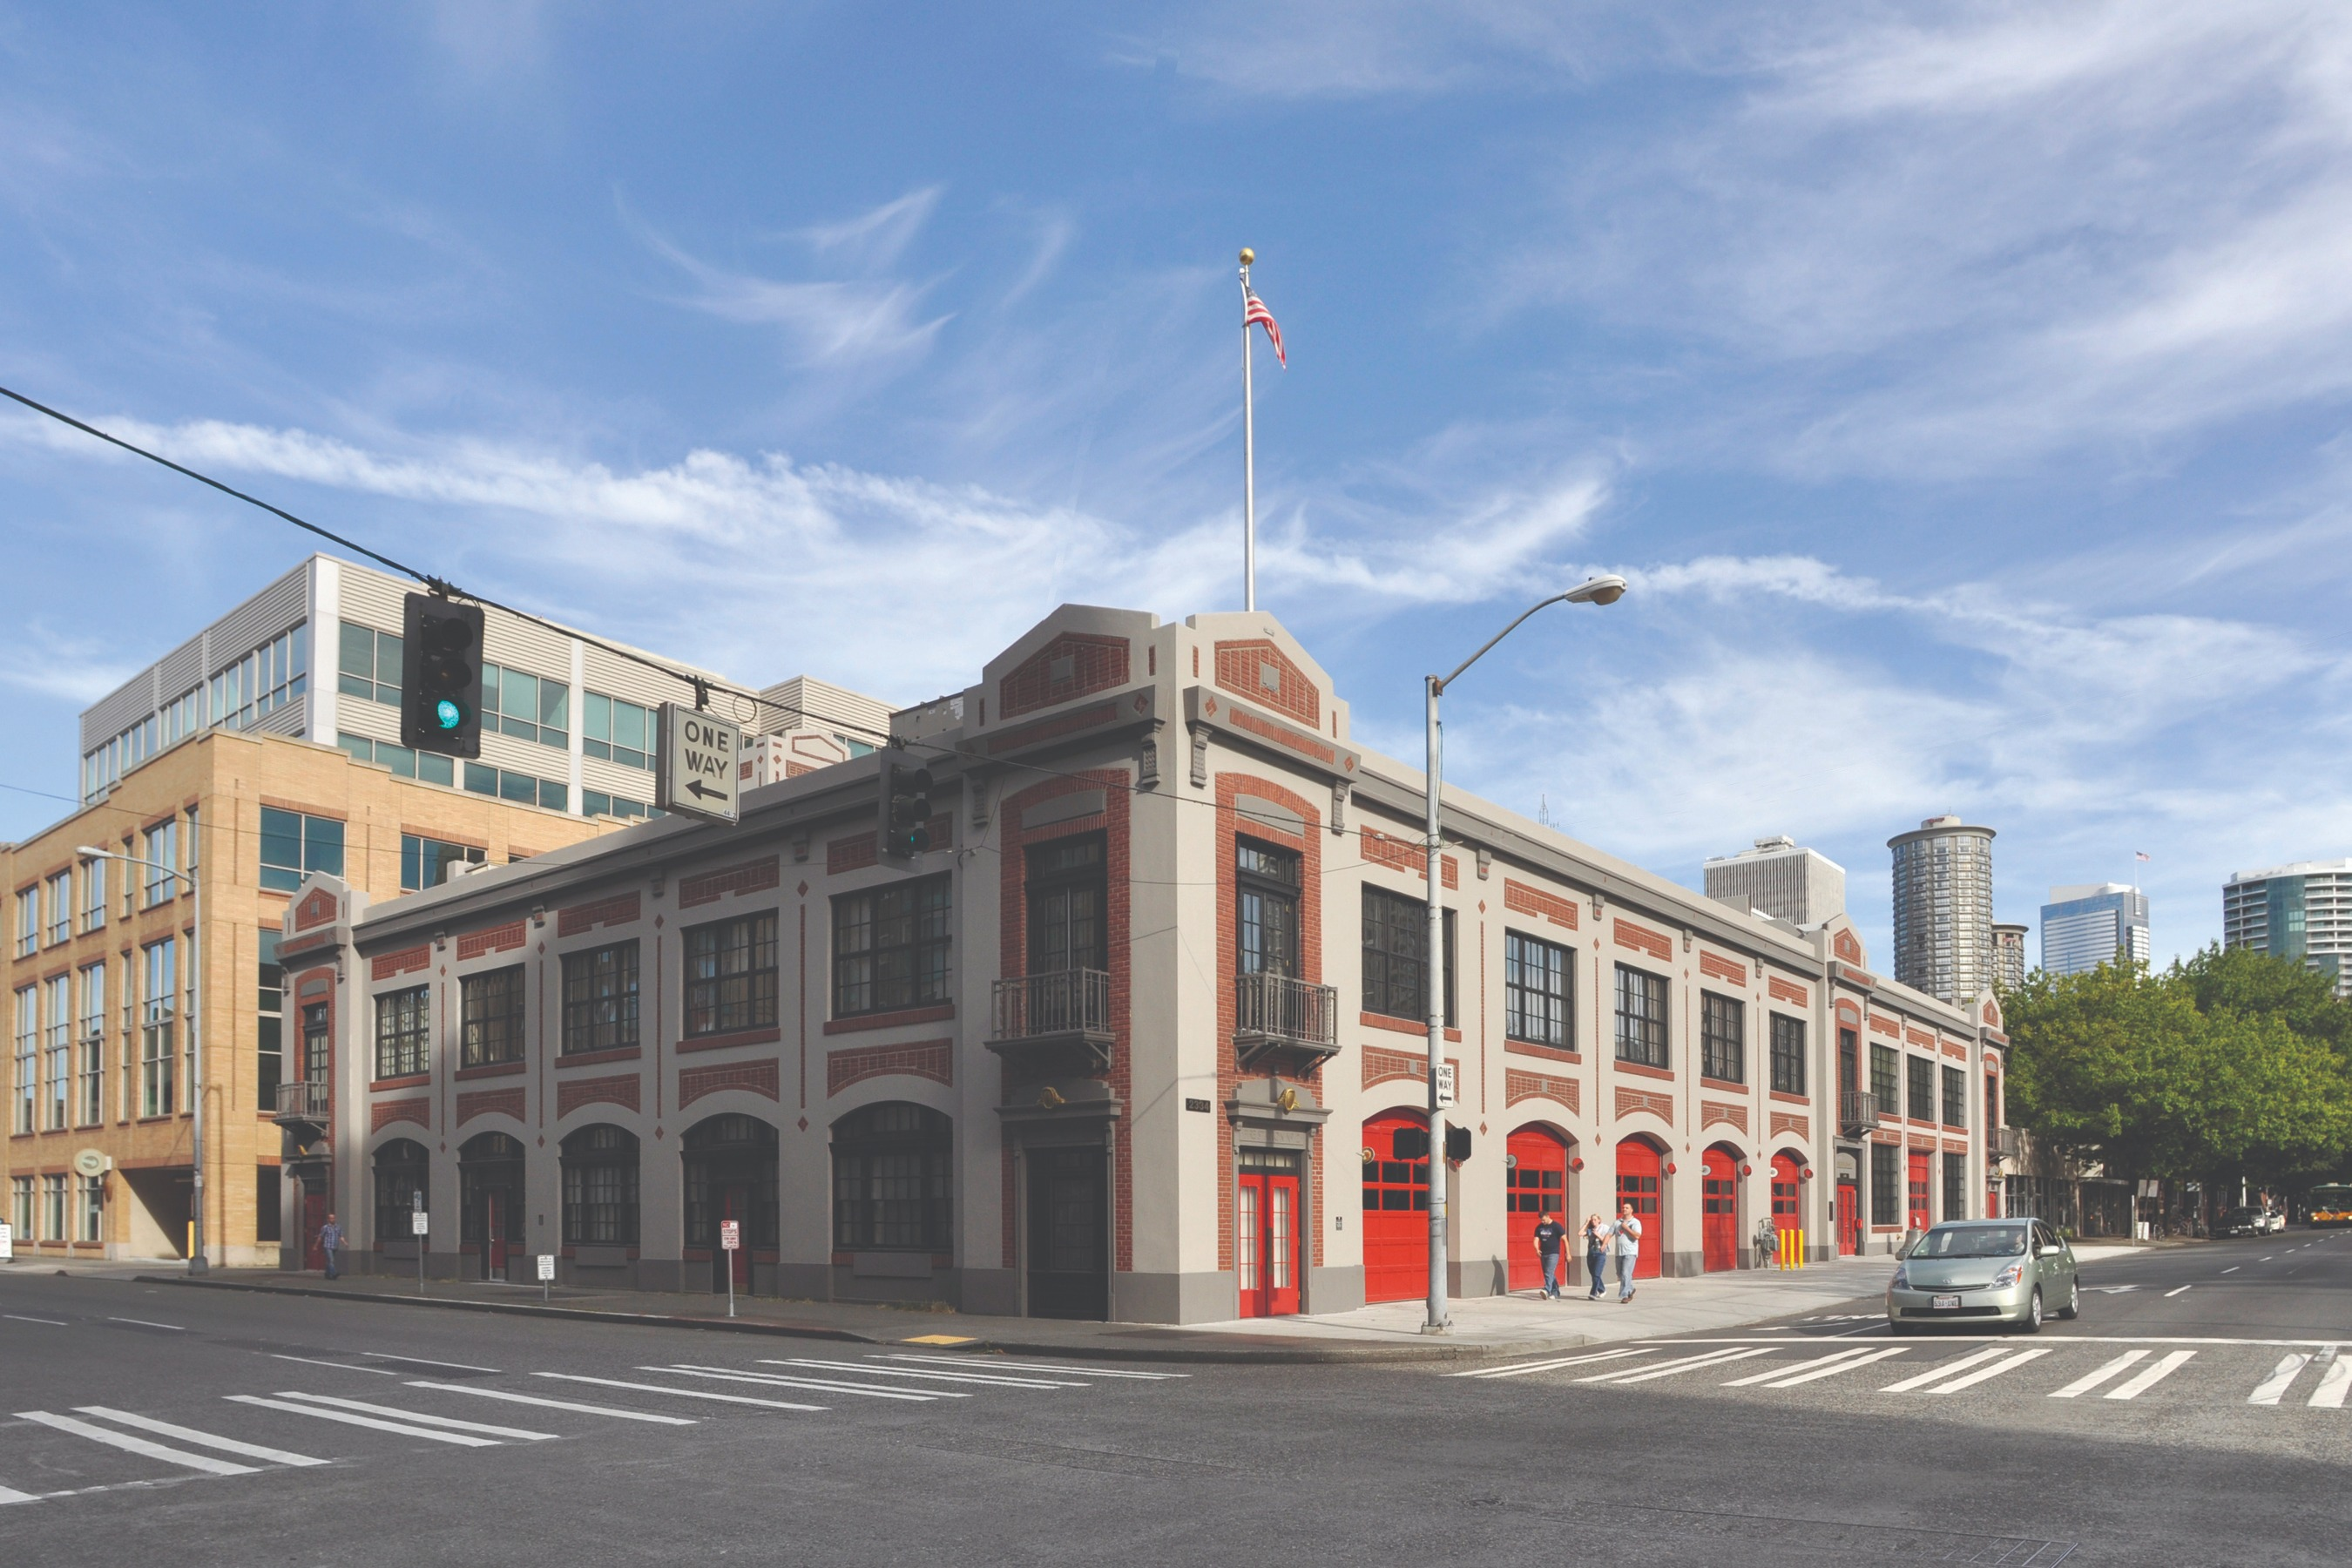 Fire Station No. 2